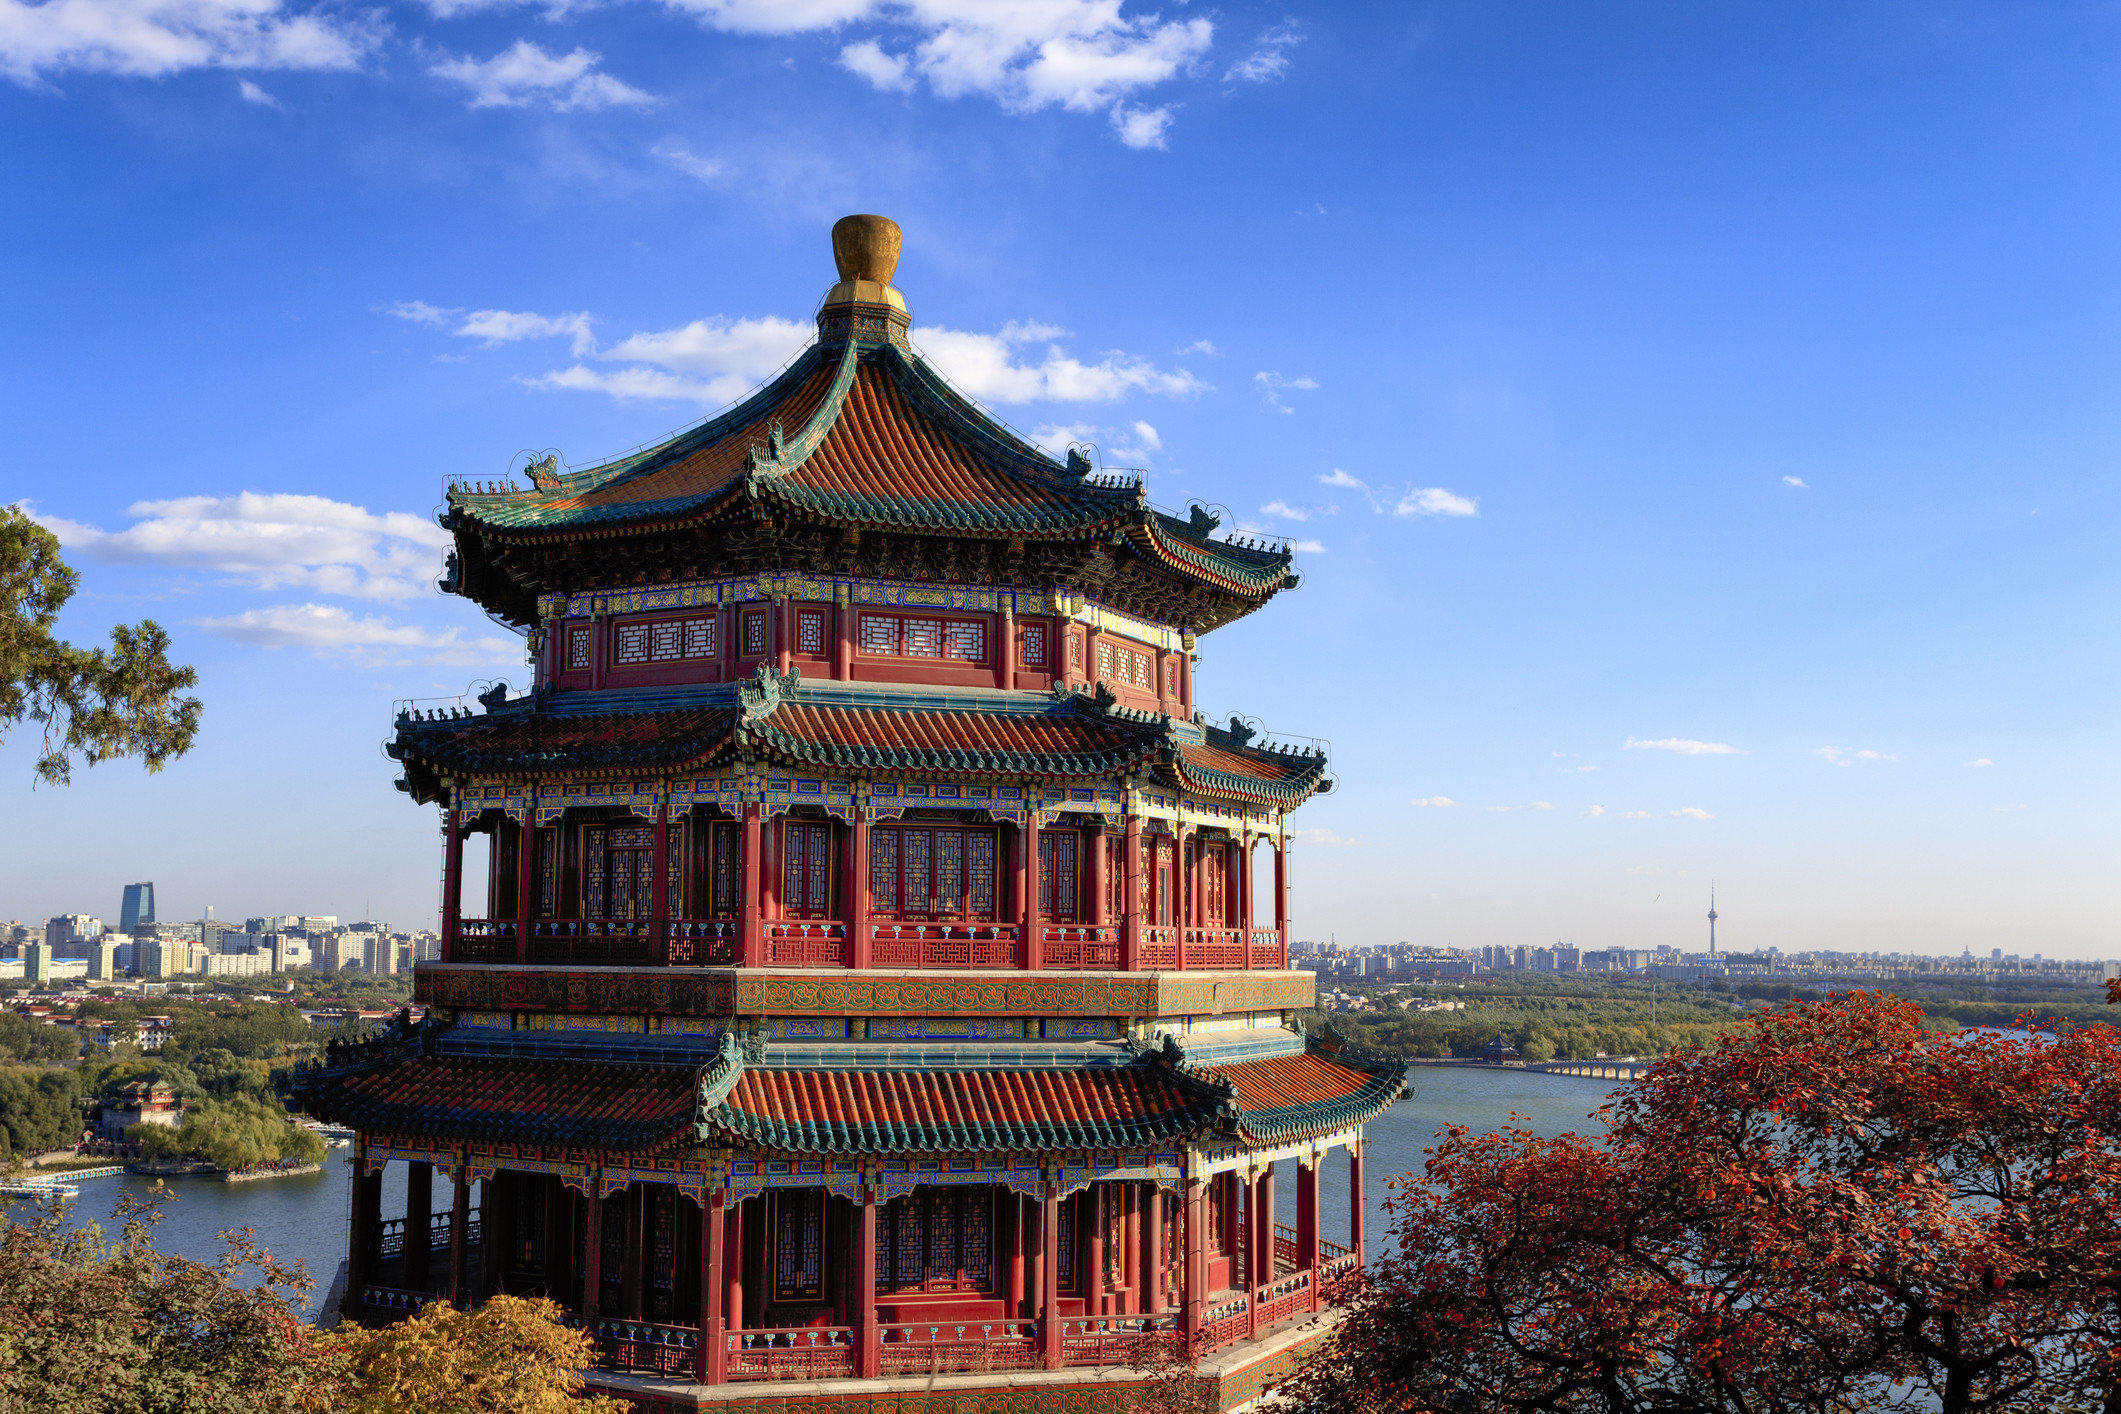 Trip Ideas sky outdoor chinese architecture building landmark historic site place of worship tower temple tourism palace pagoda